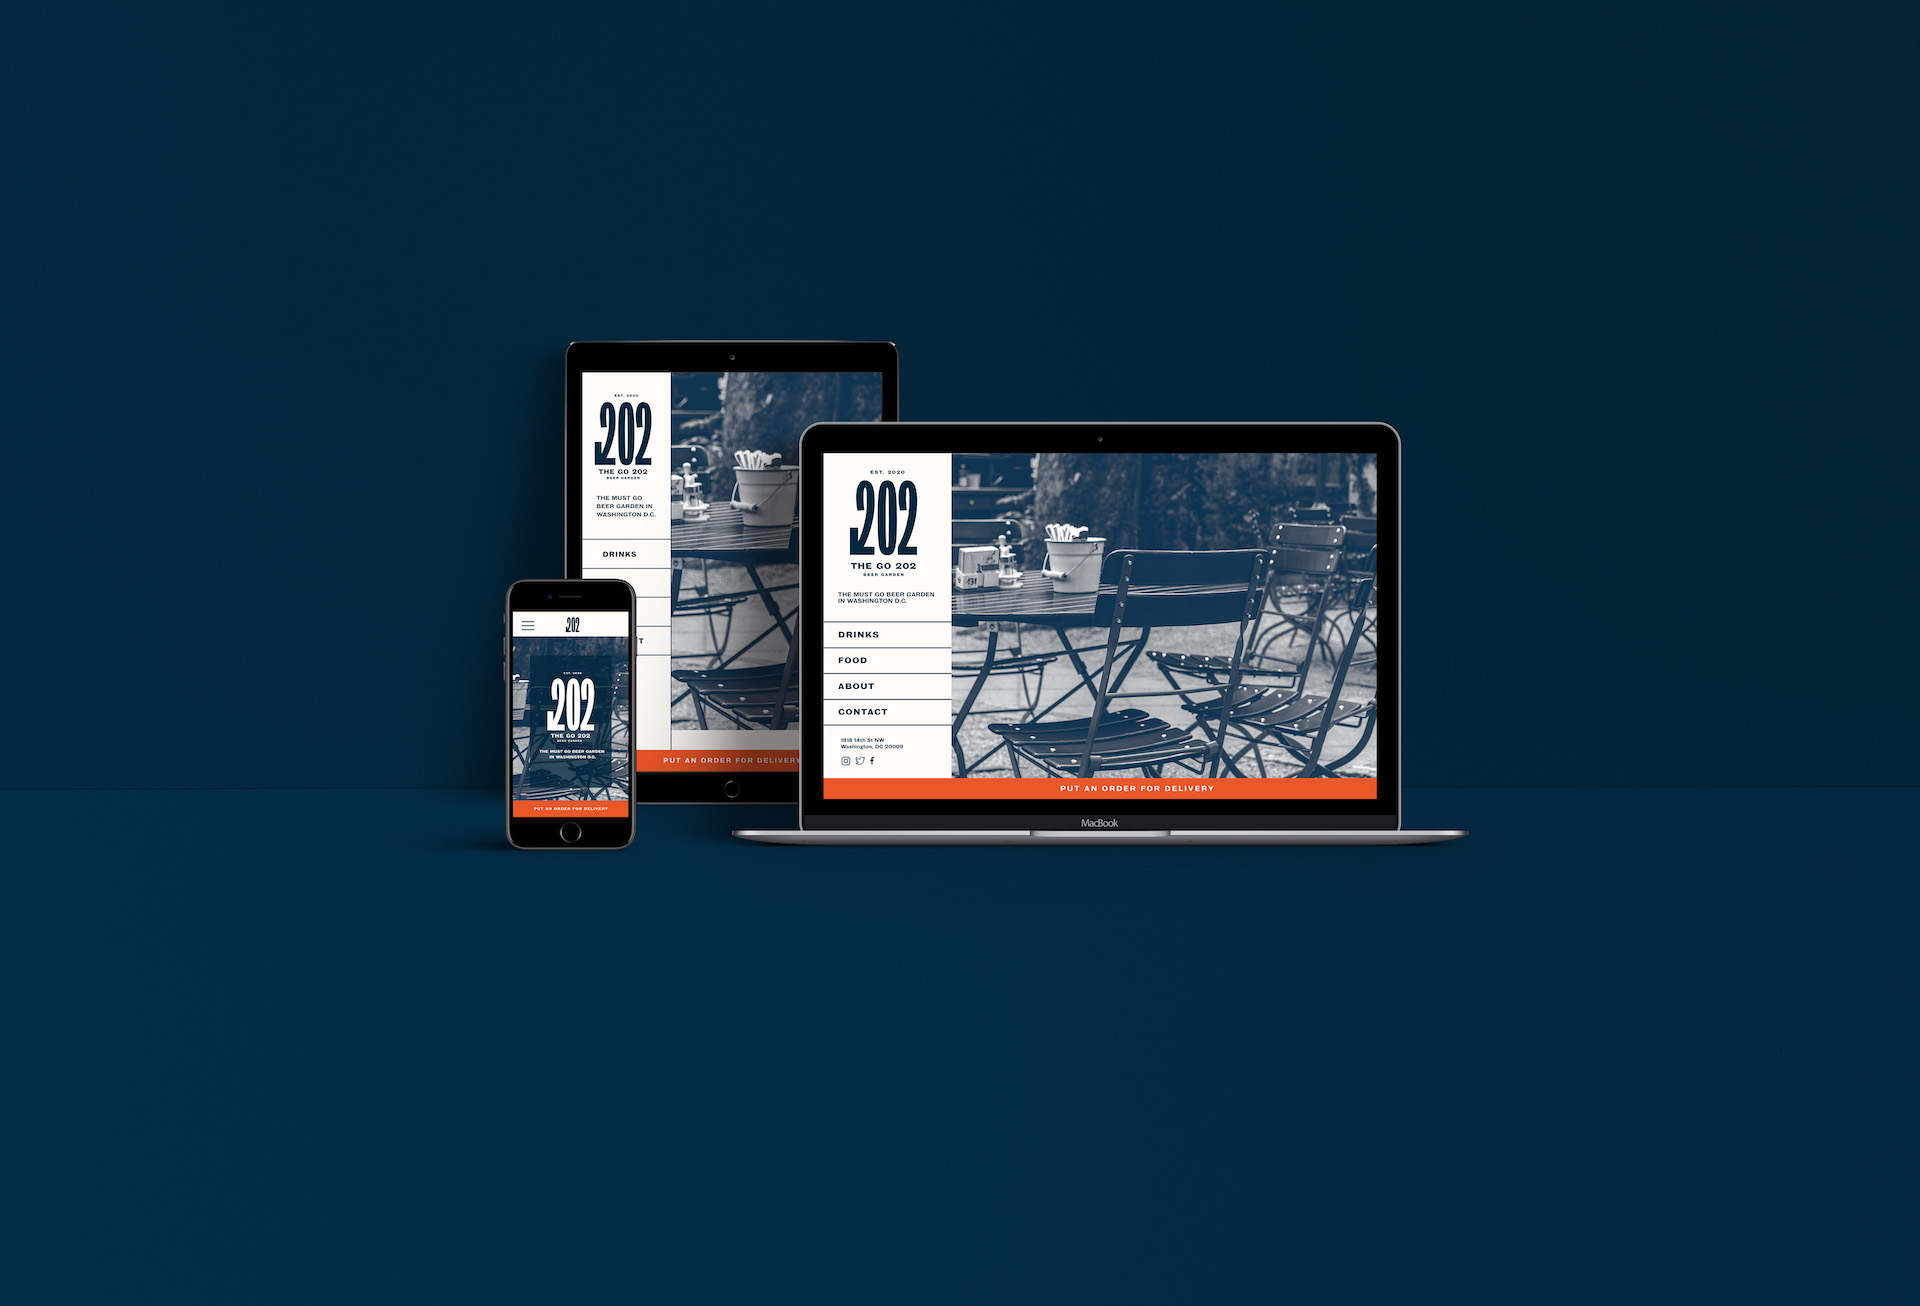 Small website mockup of what could be the web design for the restaurant